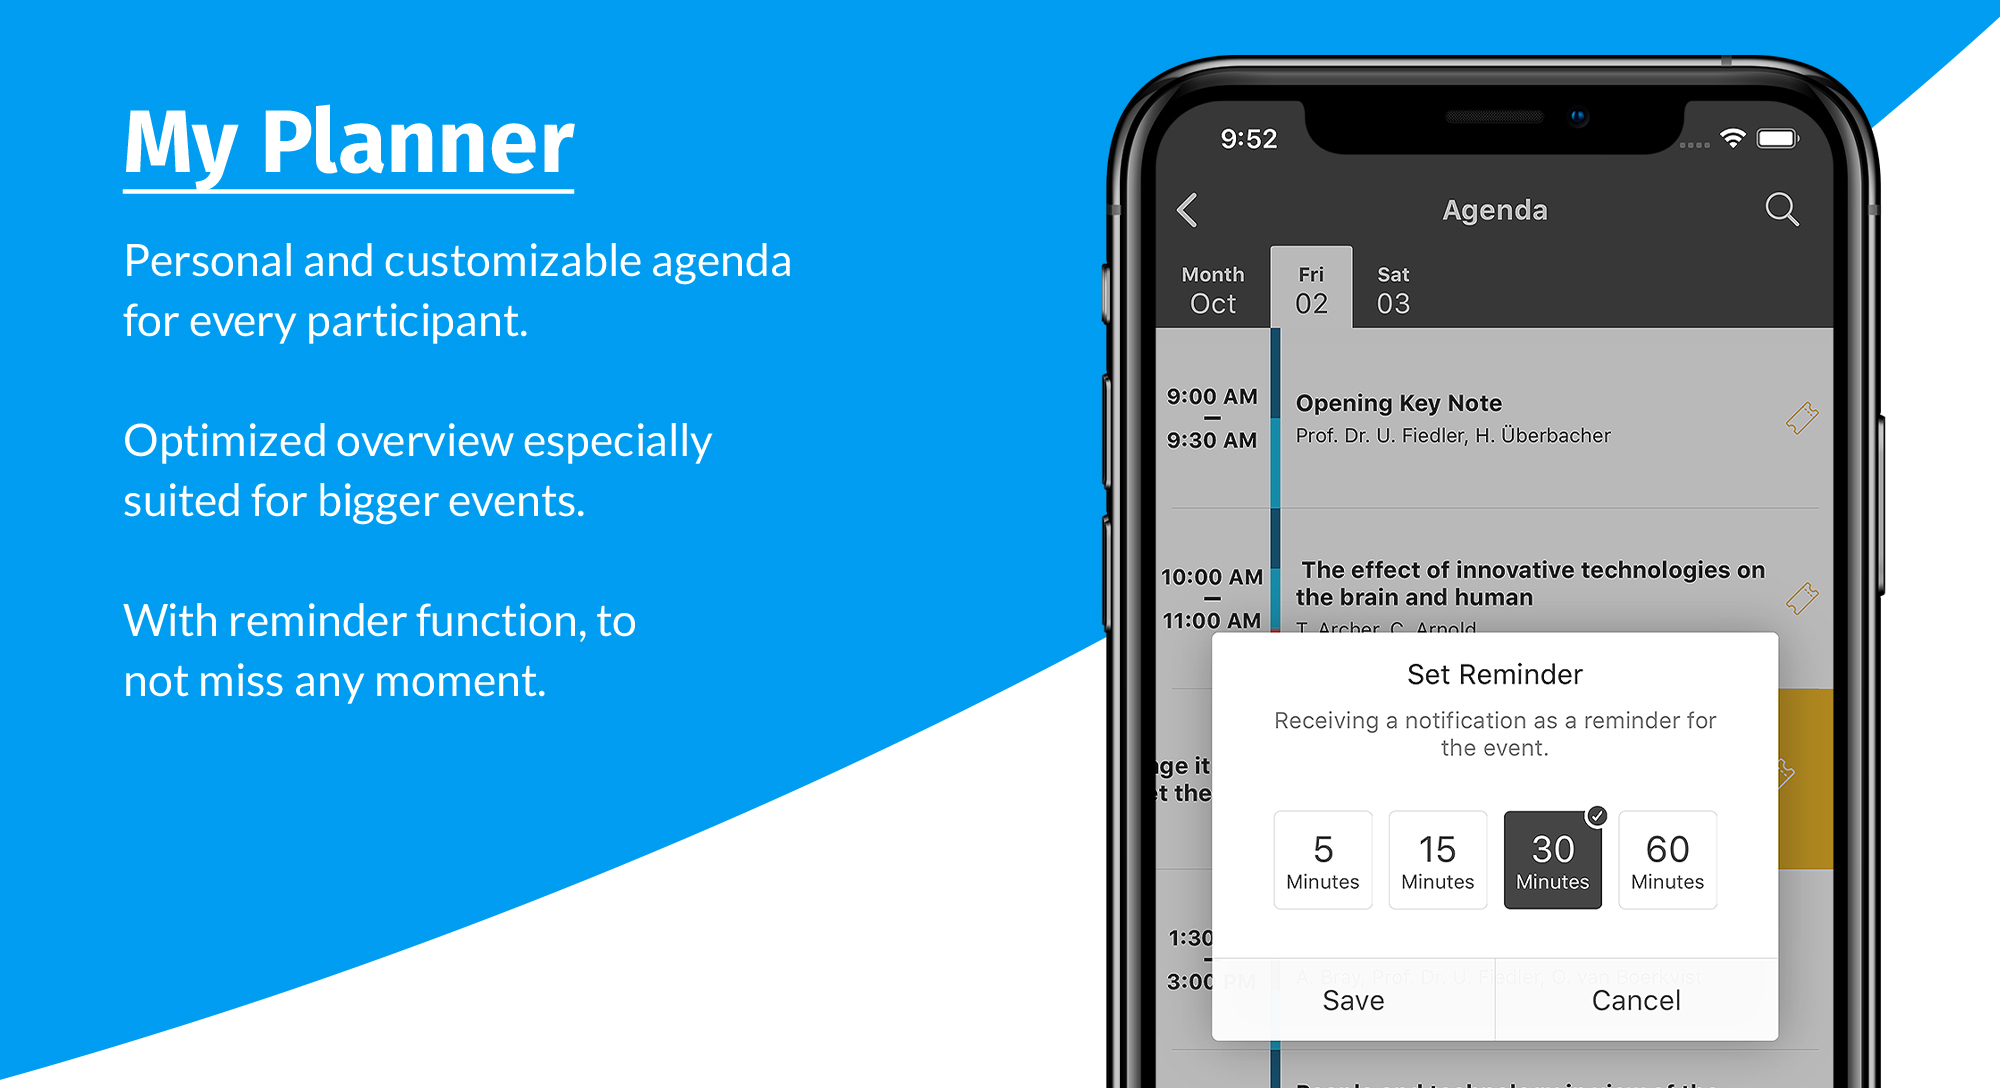 event app - my planner details